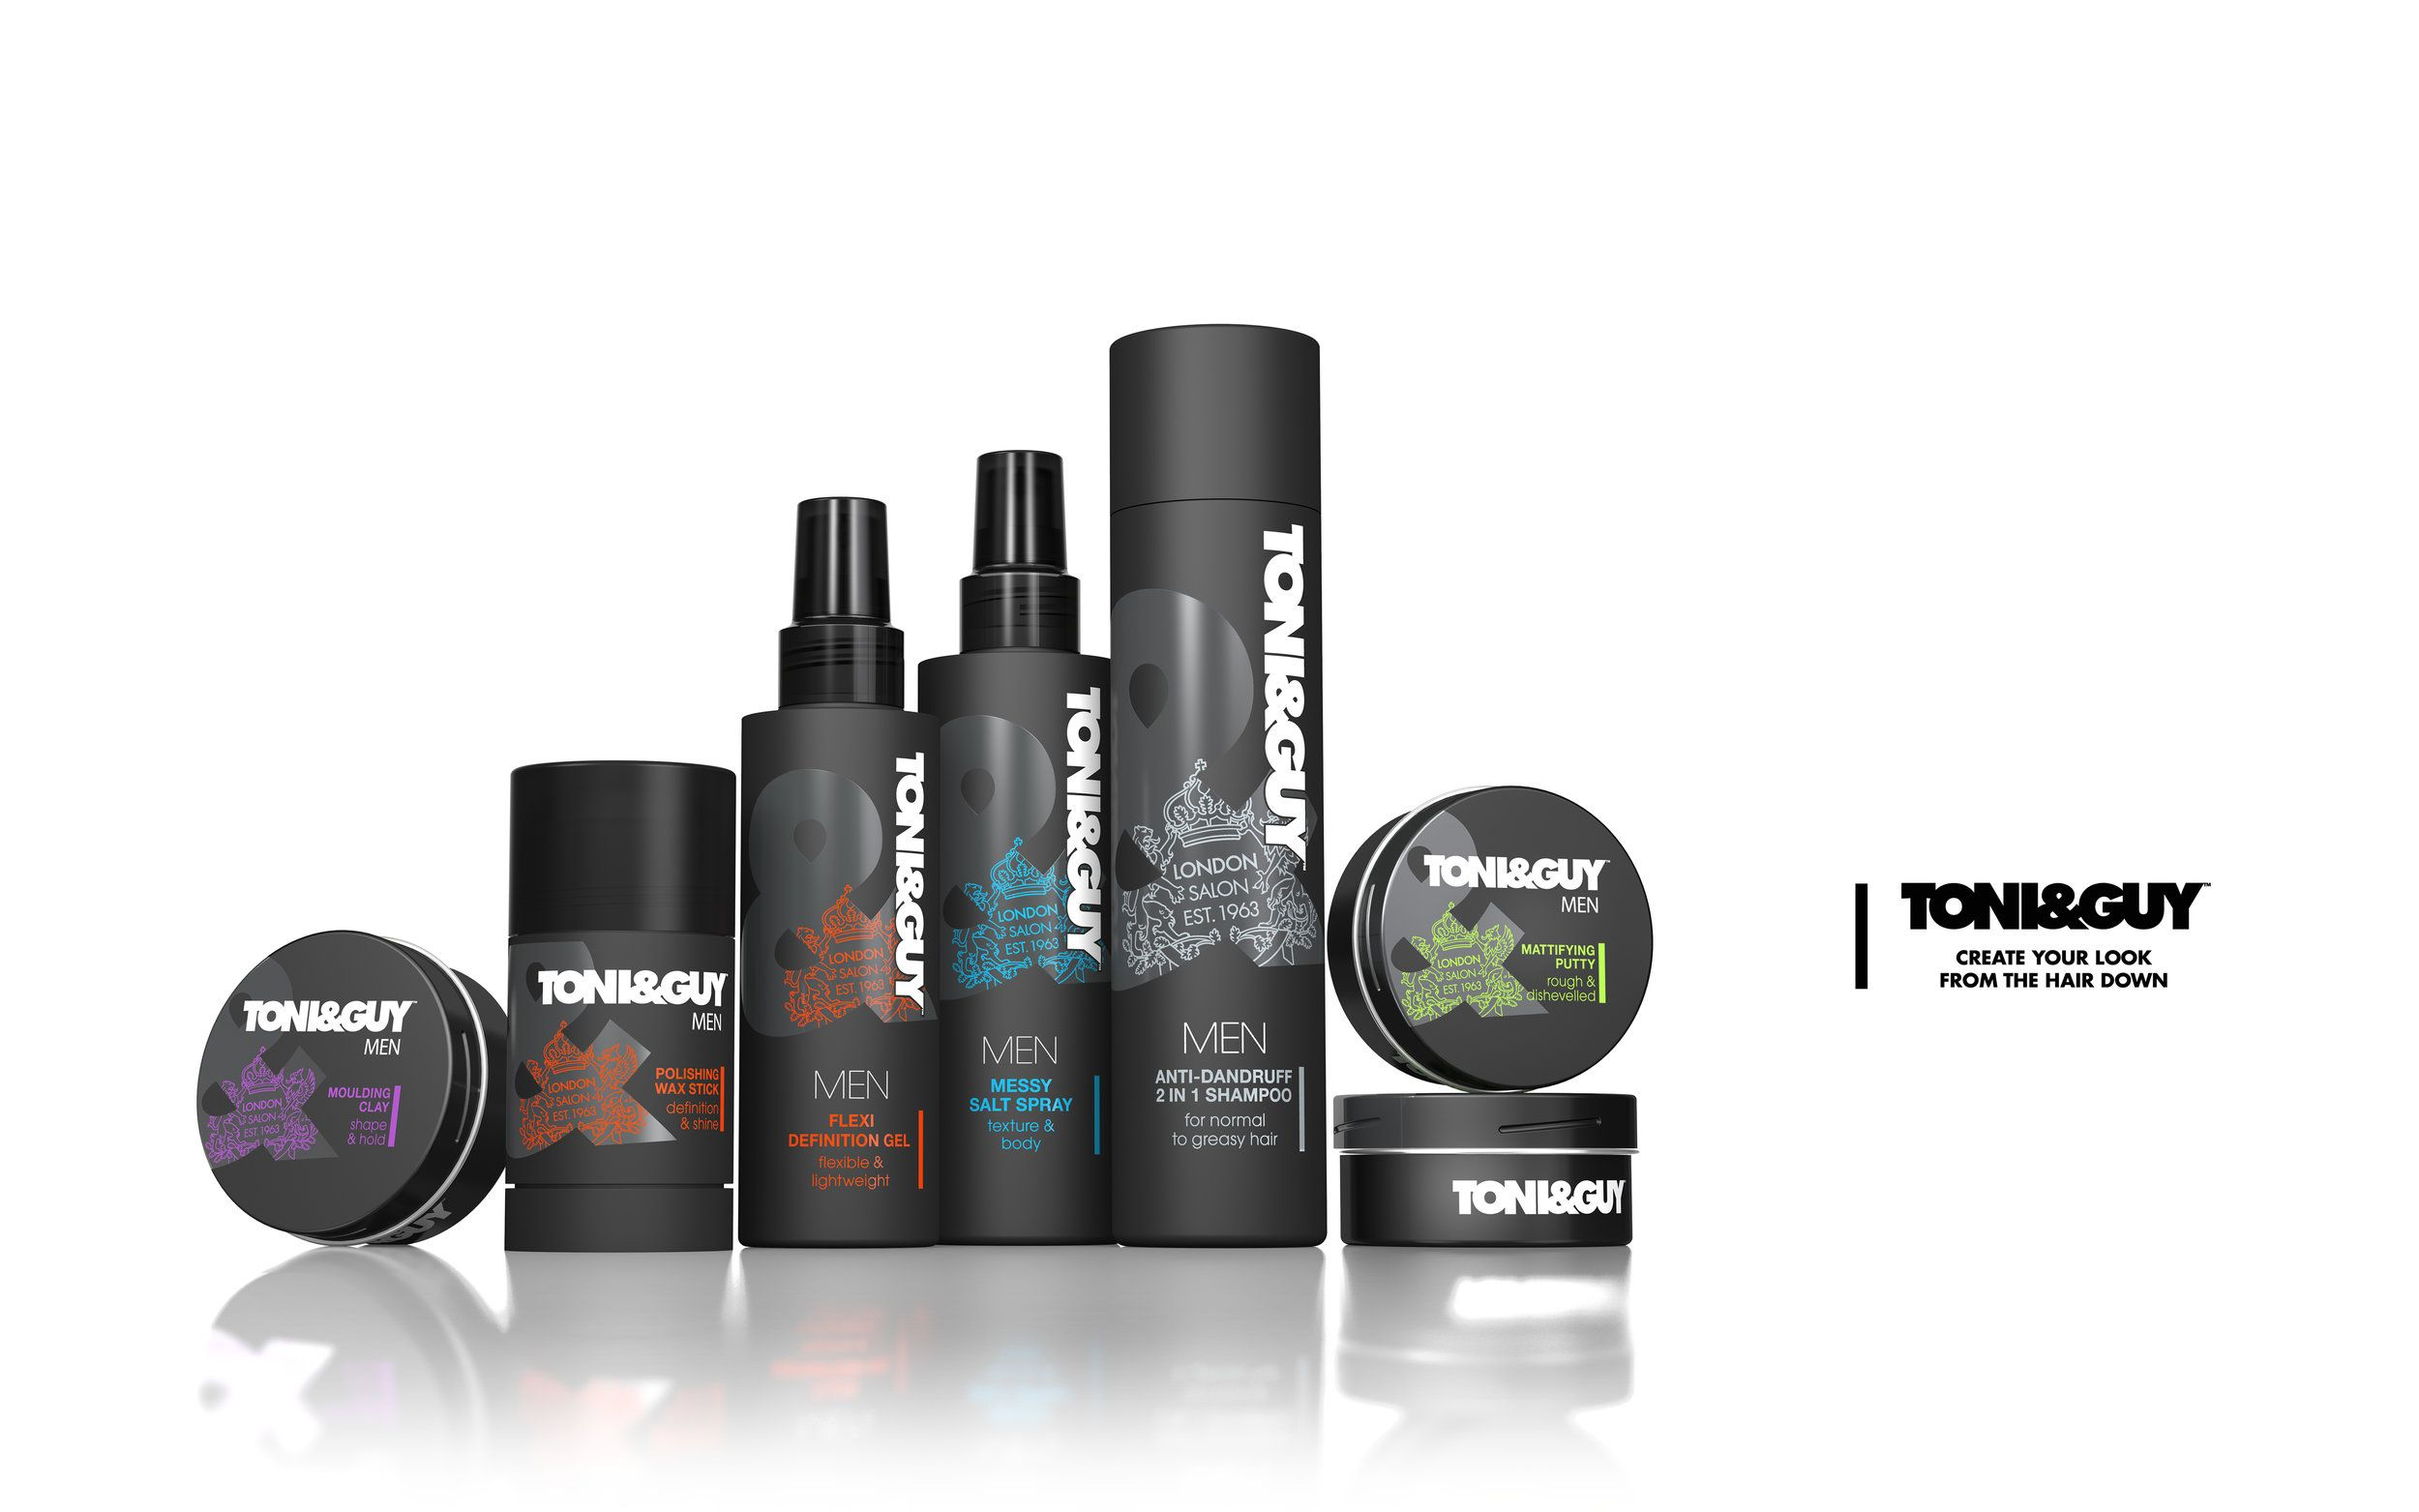 Toni Guy Goes Bold With Revamped Brand Design Branding Design Toni And Guy Beauty Packaging